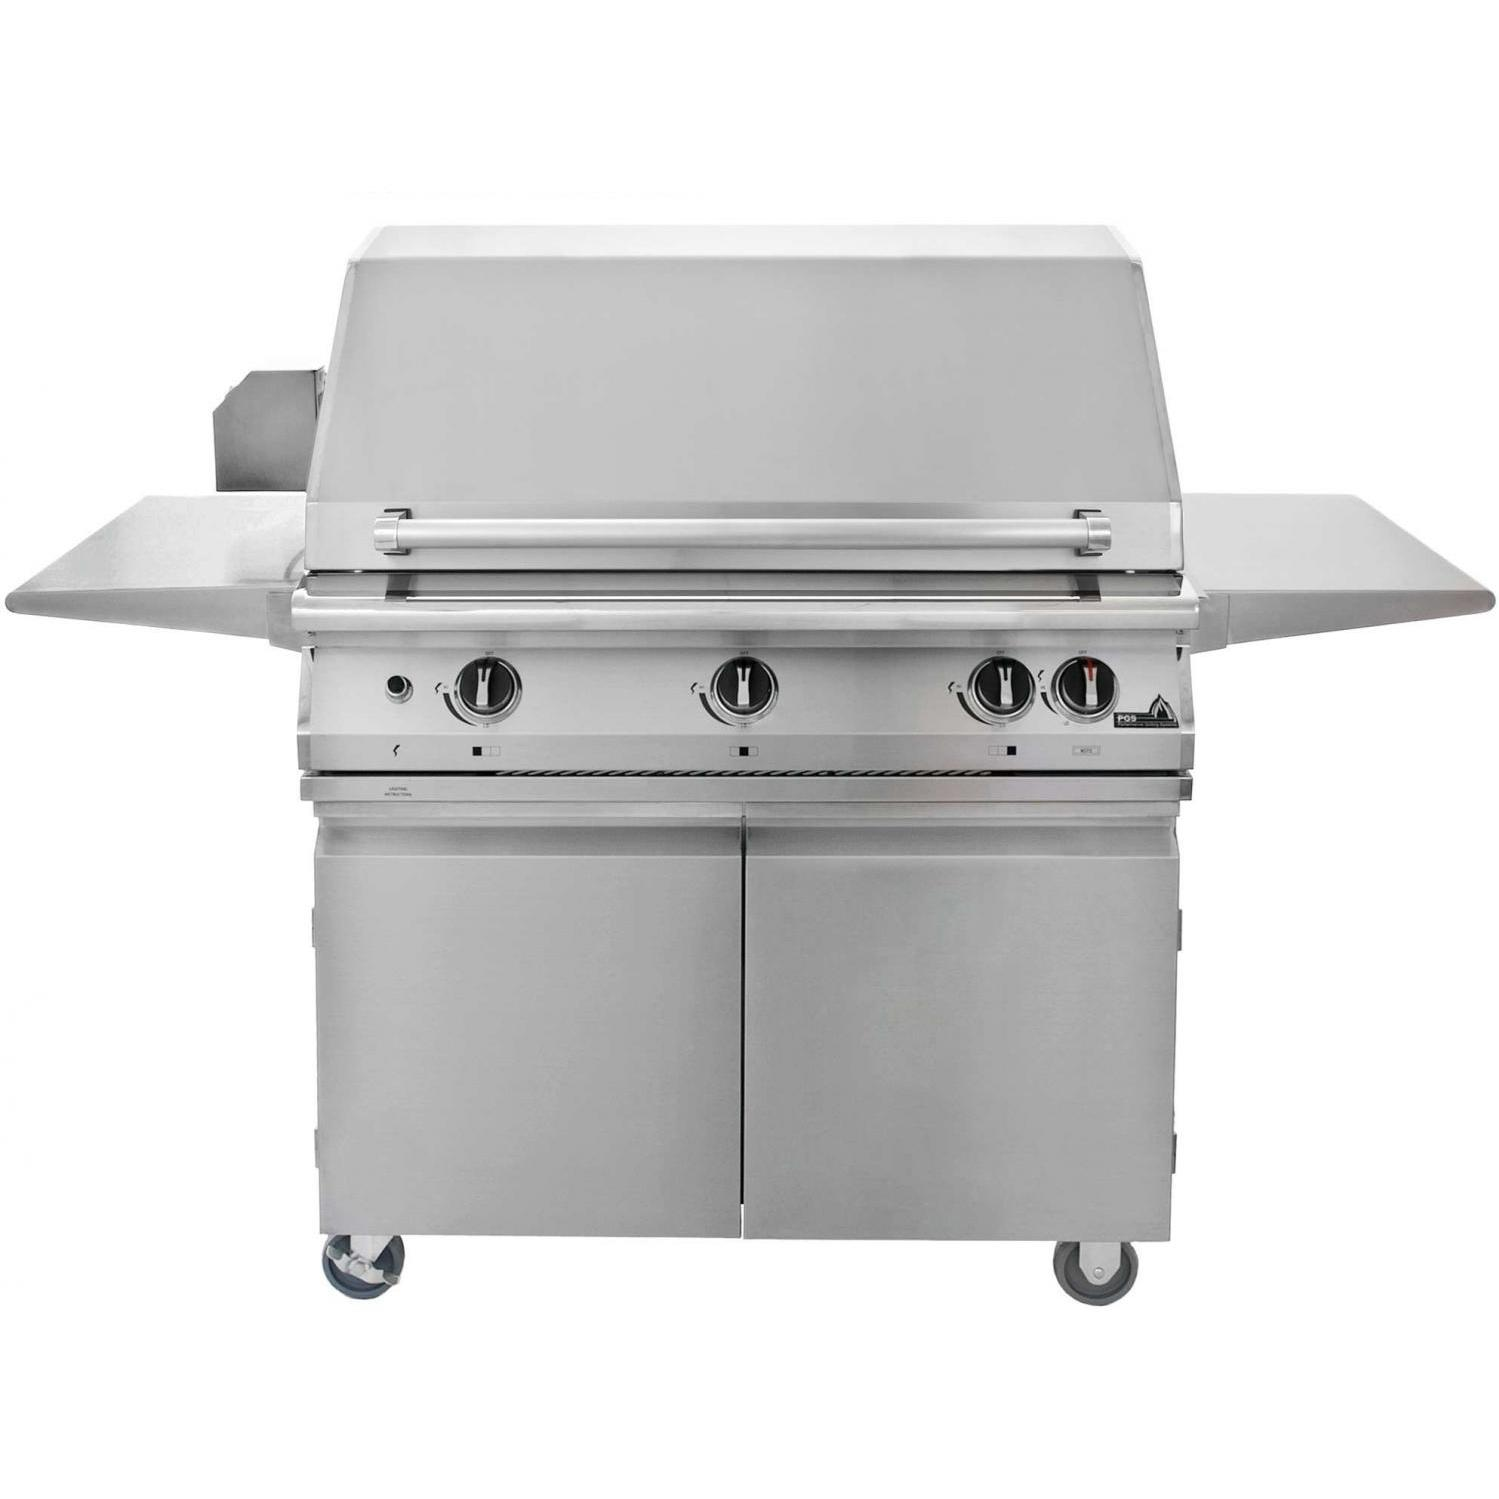 PGS Legacy Pacifica Gourmet 39-Inch Propane Gas Grill With Infrared Rear Burner And Rotisserie On Cart